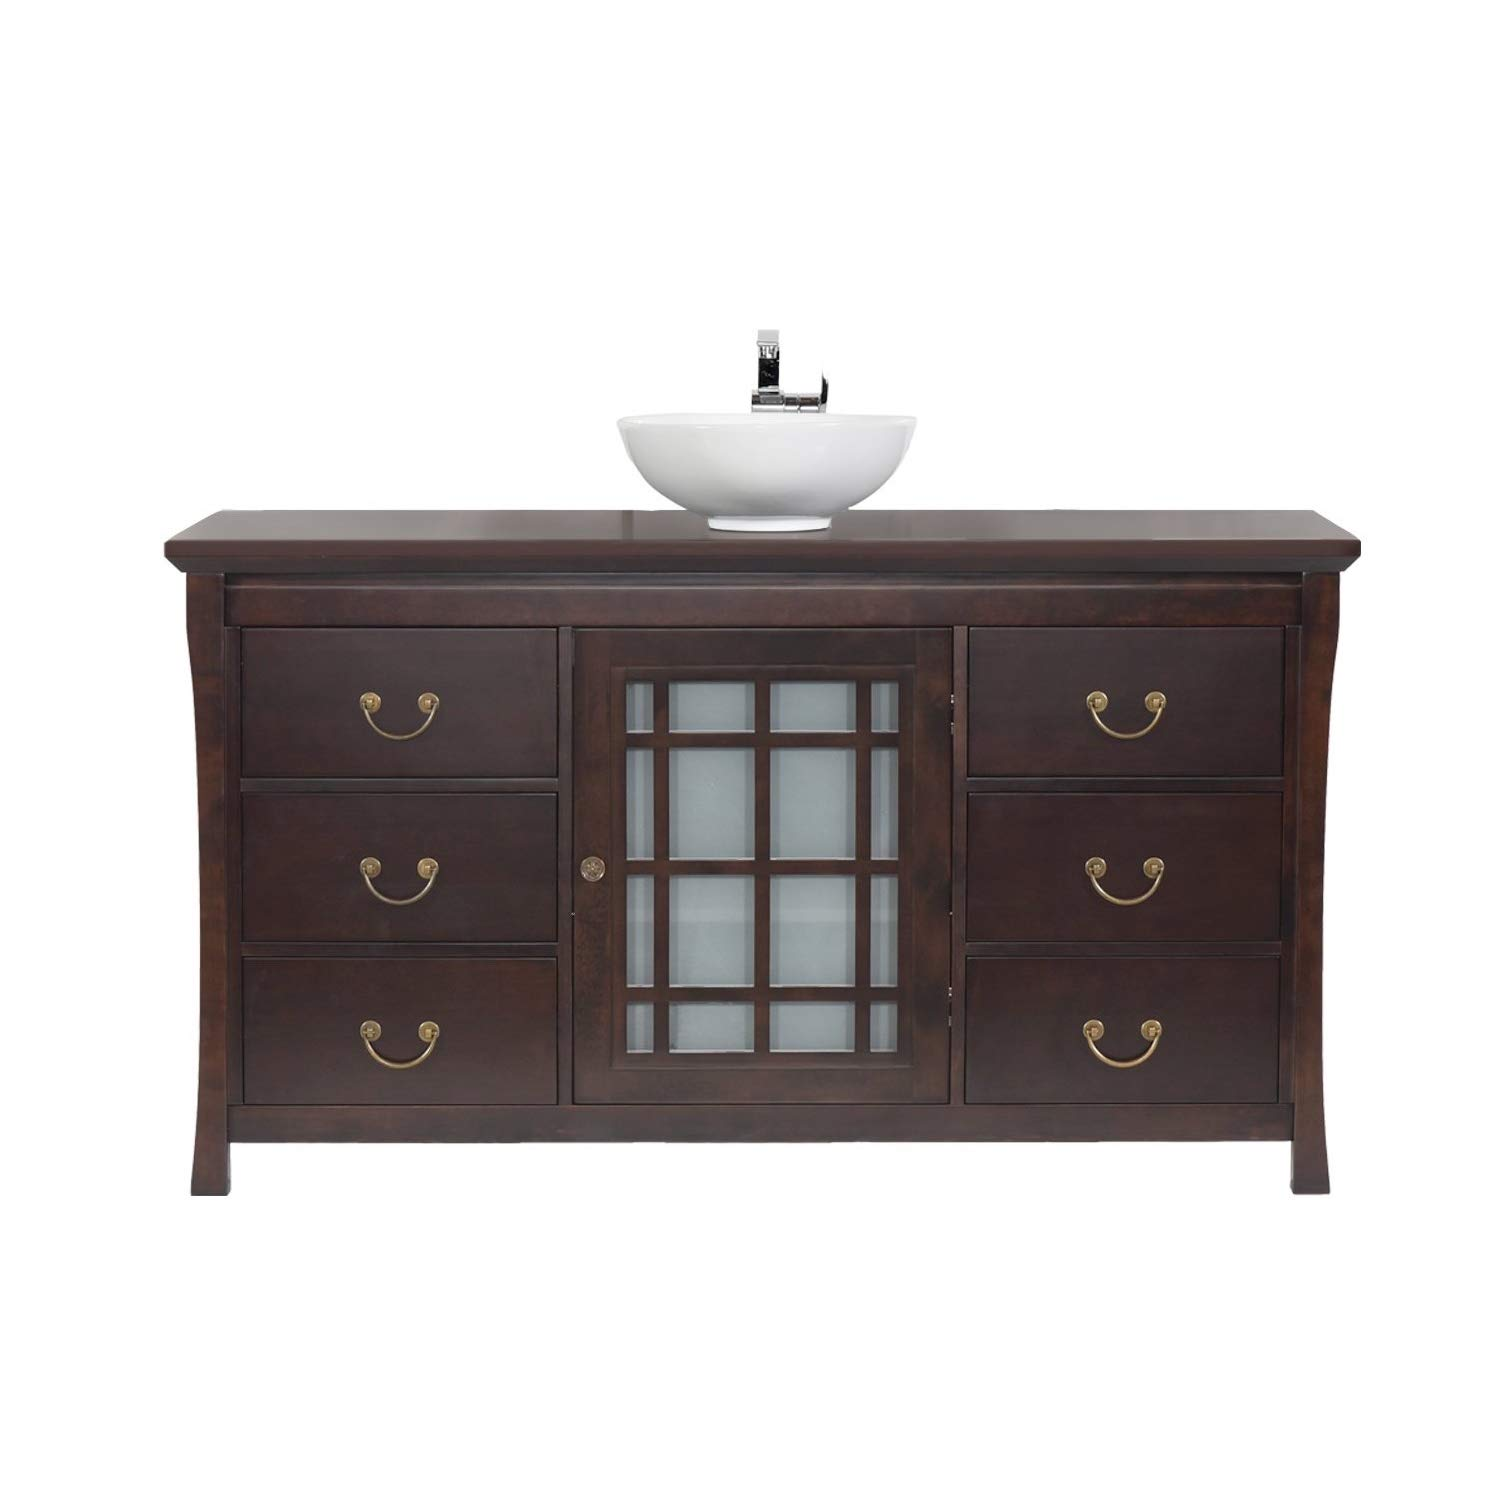 MAYKKE Shoji 64 Pacific-Rim Single Bathroom Vanity Set in Vintage Walnut, Wood Vanity Top in Vintage Walnut, Ceramic Vessel in White LBA0460005